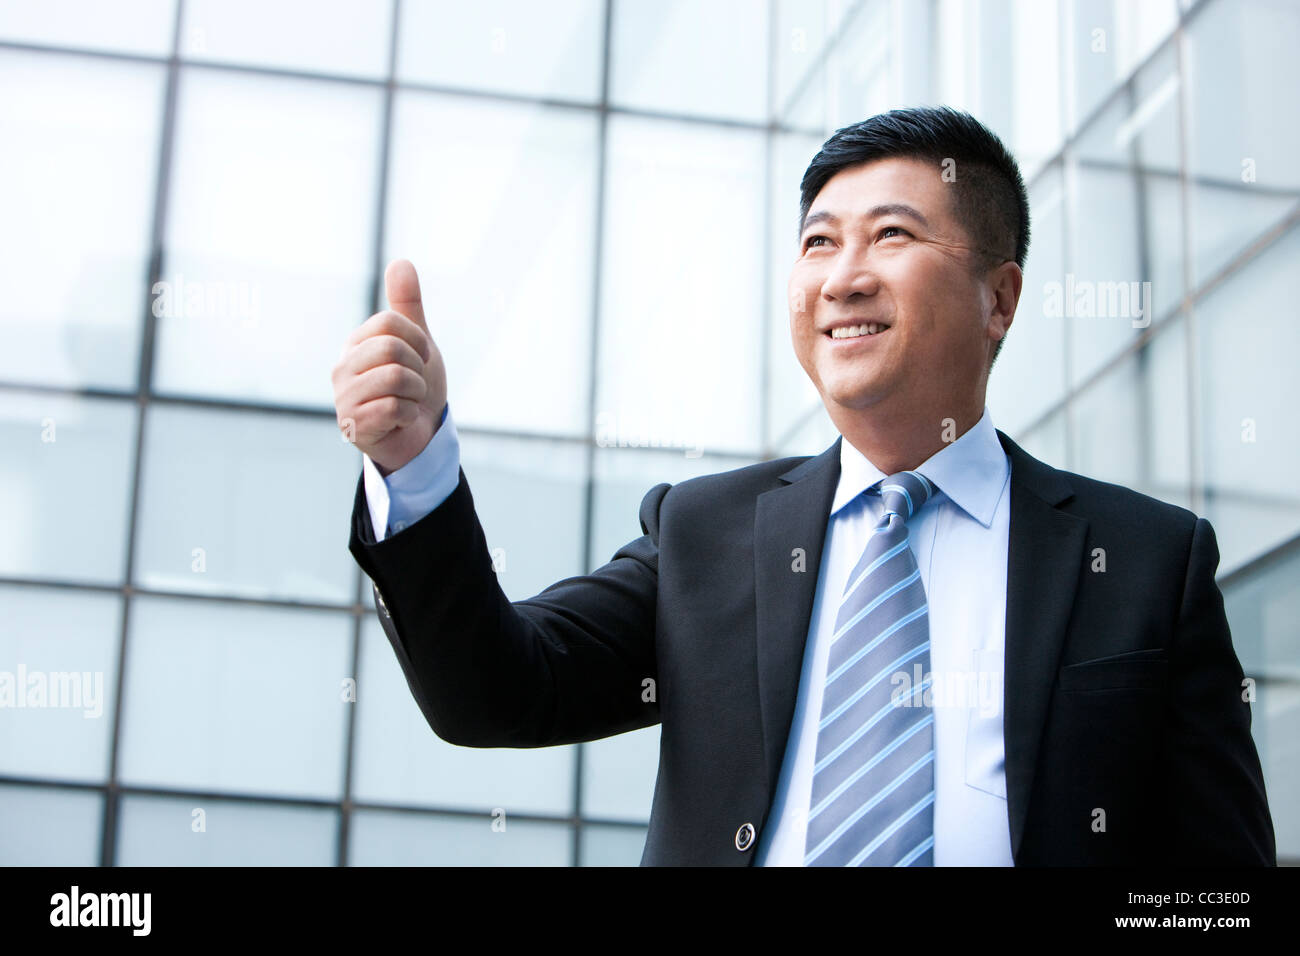 Businessman giving the thumbs-up sign - Stock Image